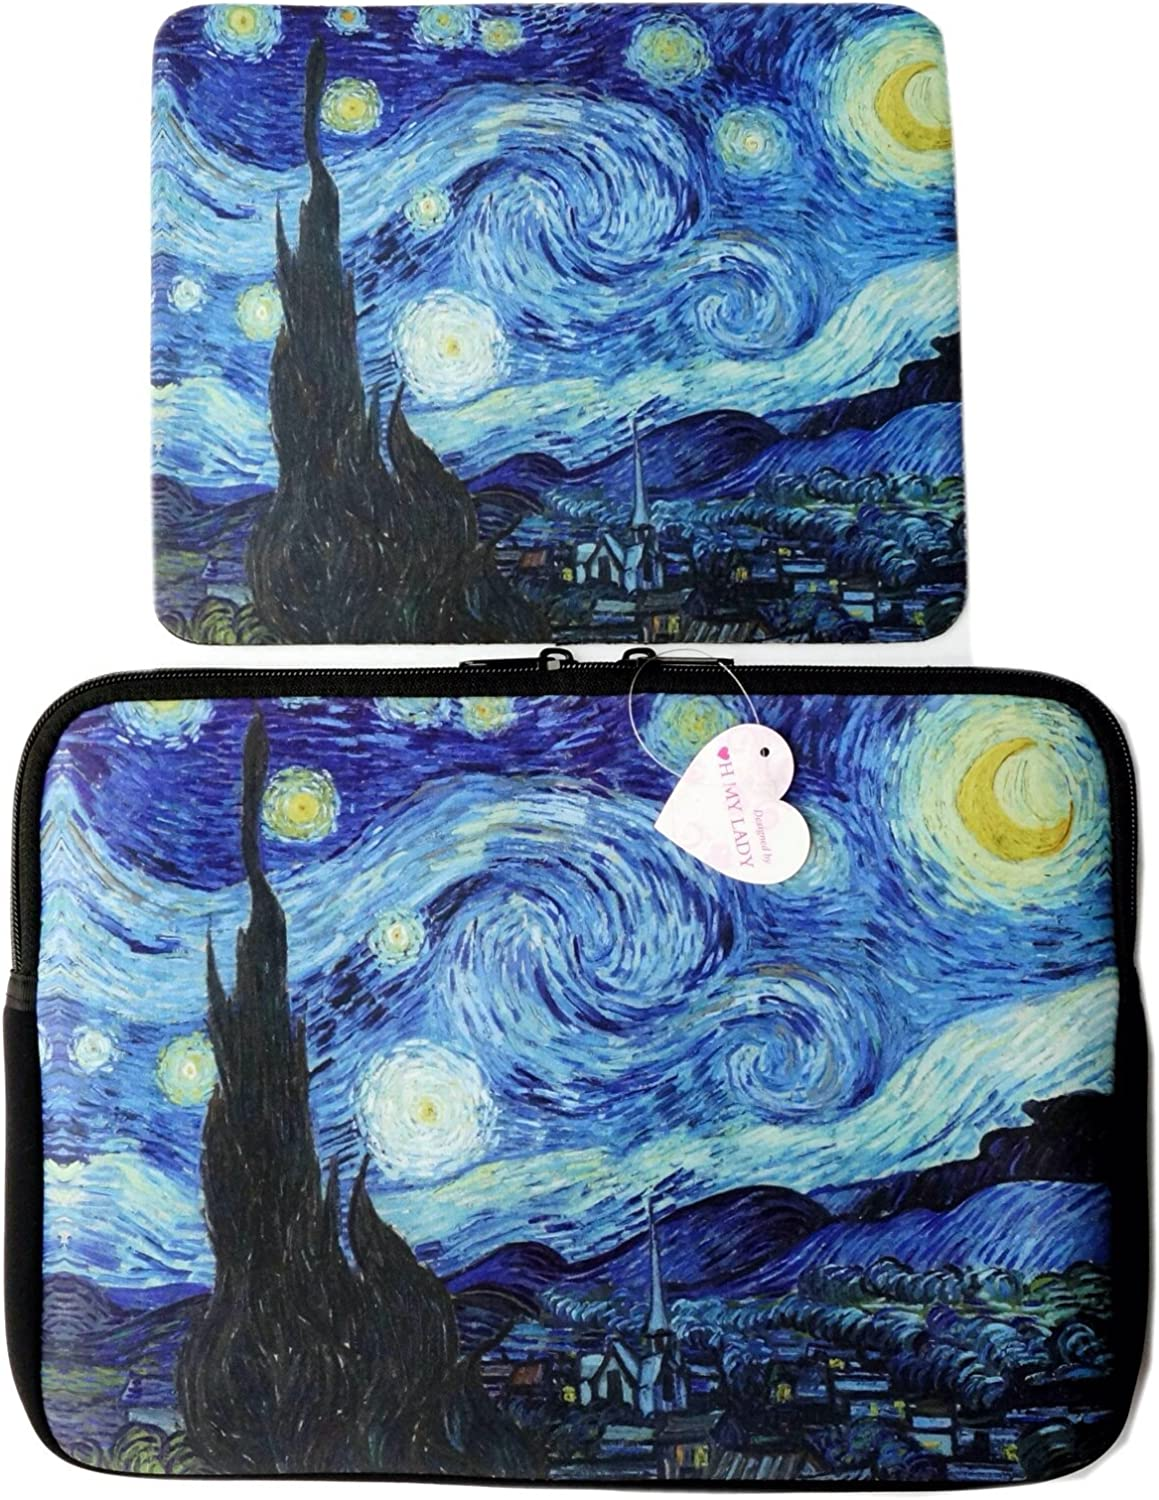 """Oh My Lady 11-11.6"""" inch Van Gogh's Masterpiece (Starry Night) Oil Painting Neoprene Laptop Case/Sleeve/Bag/Pouch/Cover – Available in 7 Patterns"""